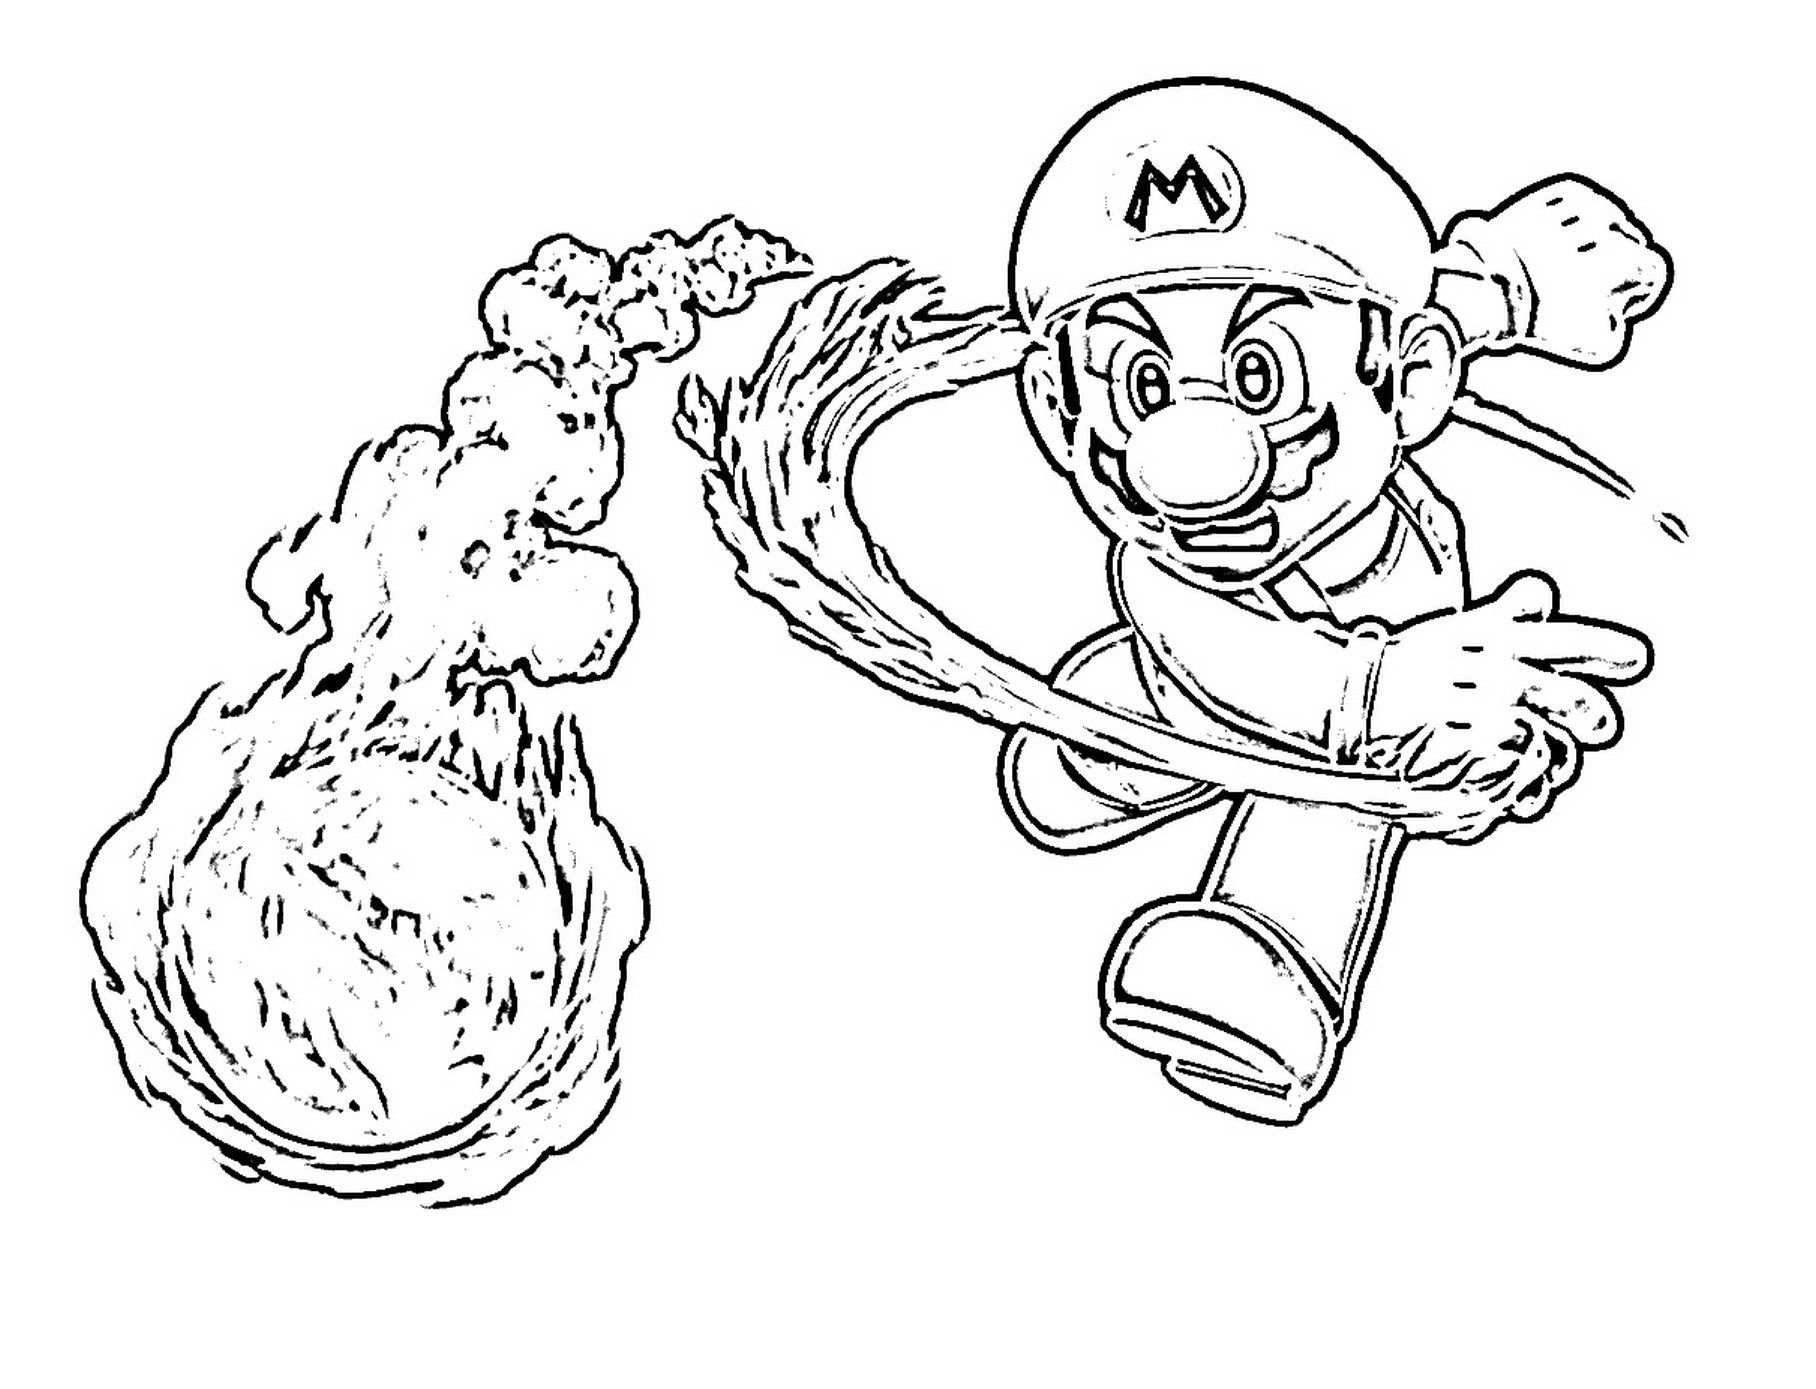 Super Mario Coloring Pages Inspirational Coloring Book World 44 Phenomenal Mario Bros Colo Super Mario Coloring Pages Super Coloring Pages Mario Coloring Pages